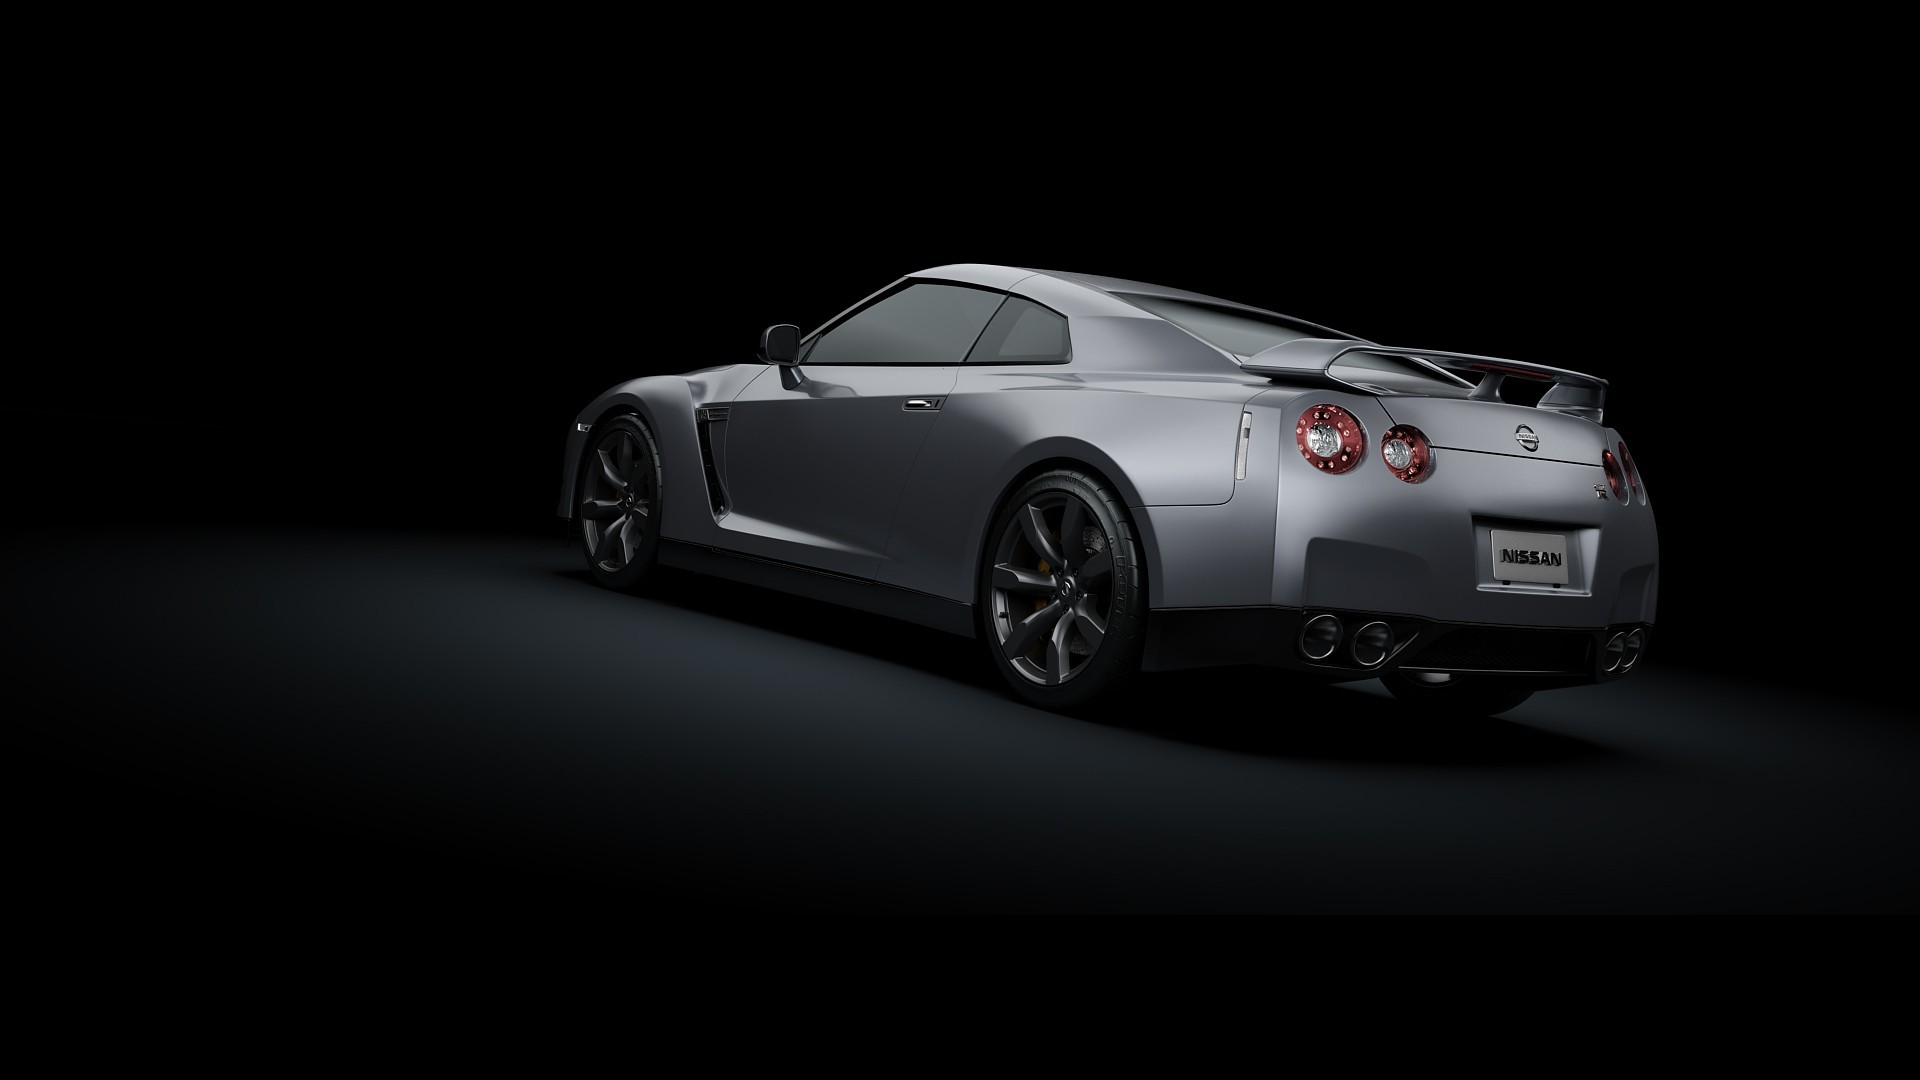 cars Nissan nissan skyline HD Wallpaper